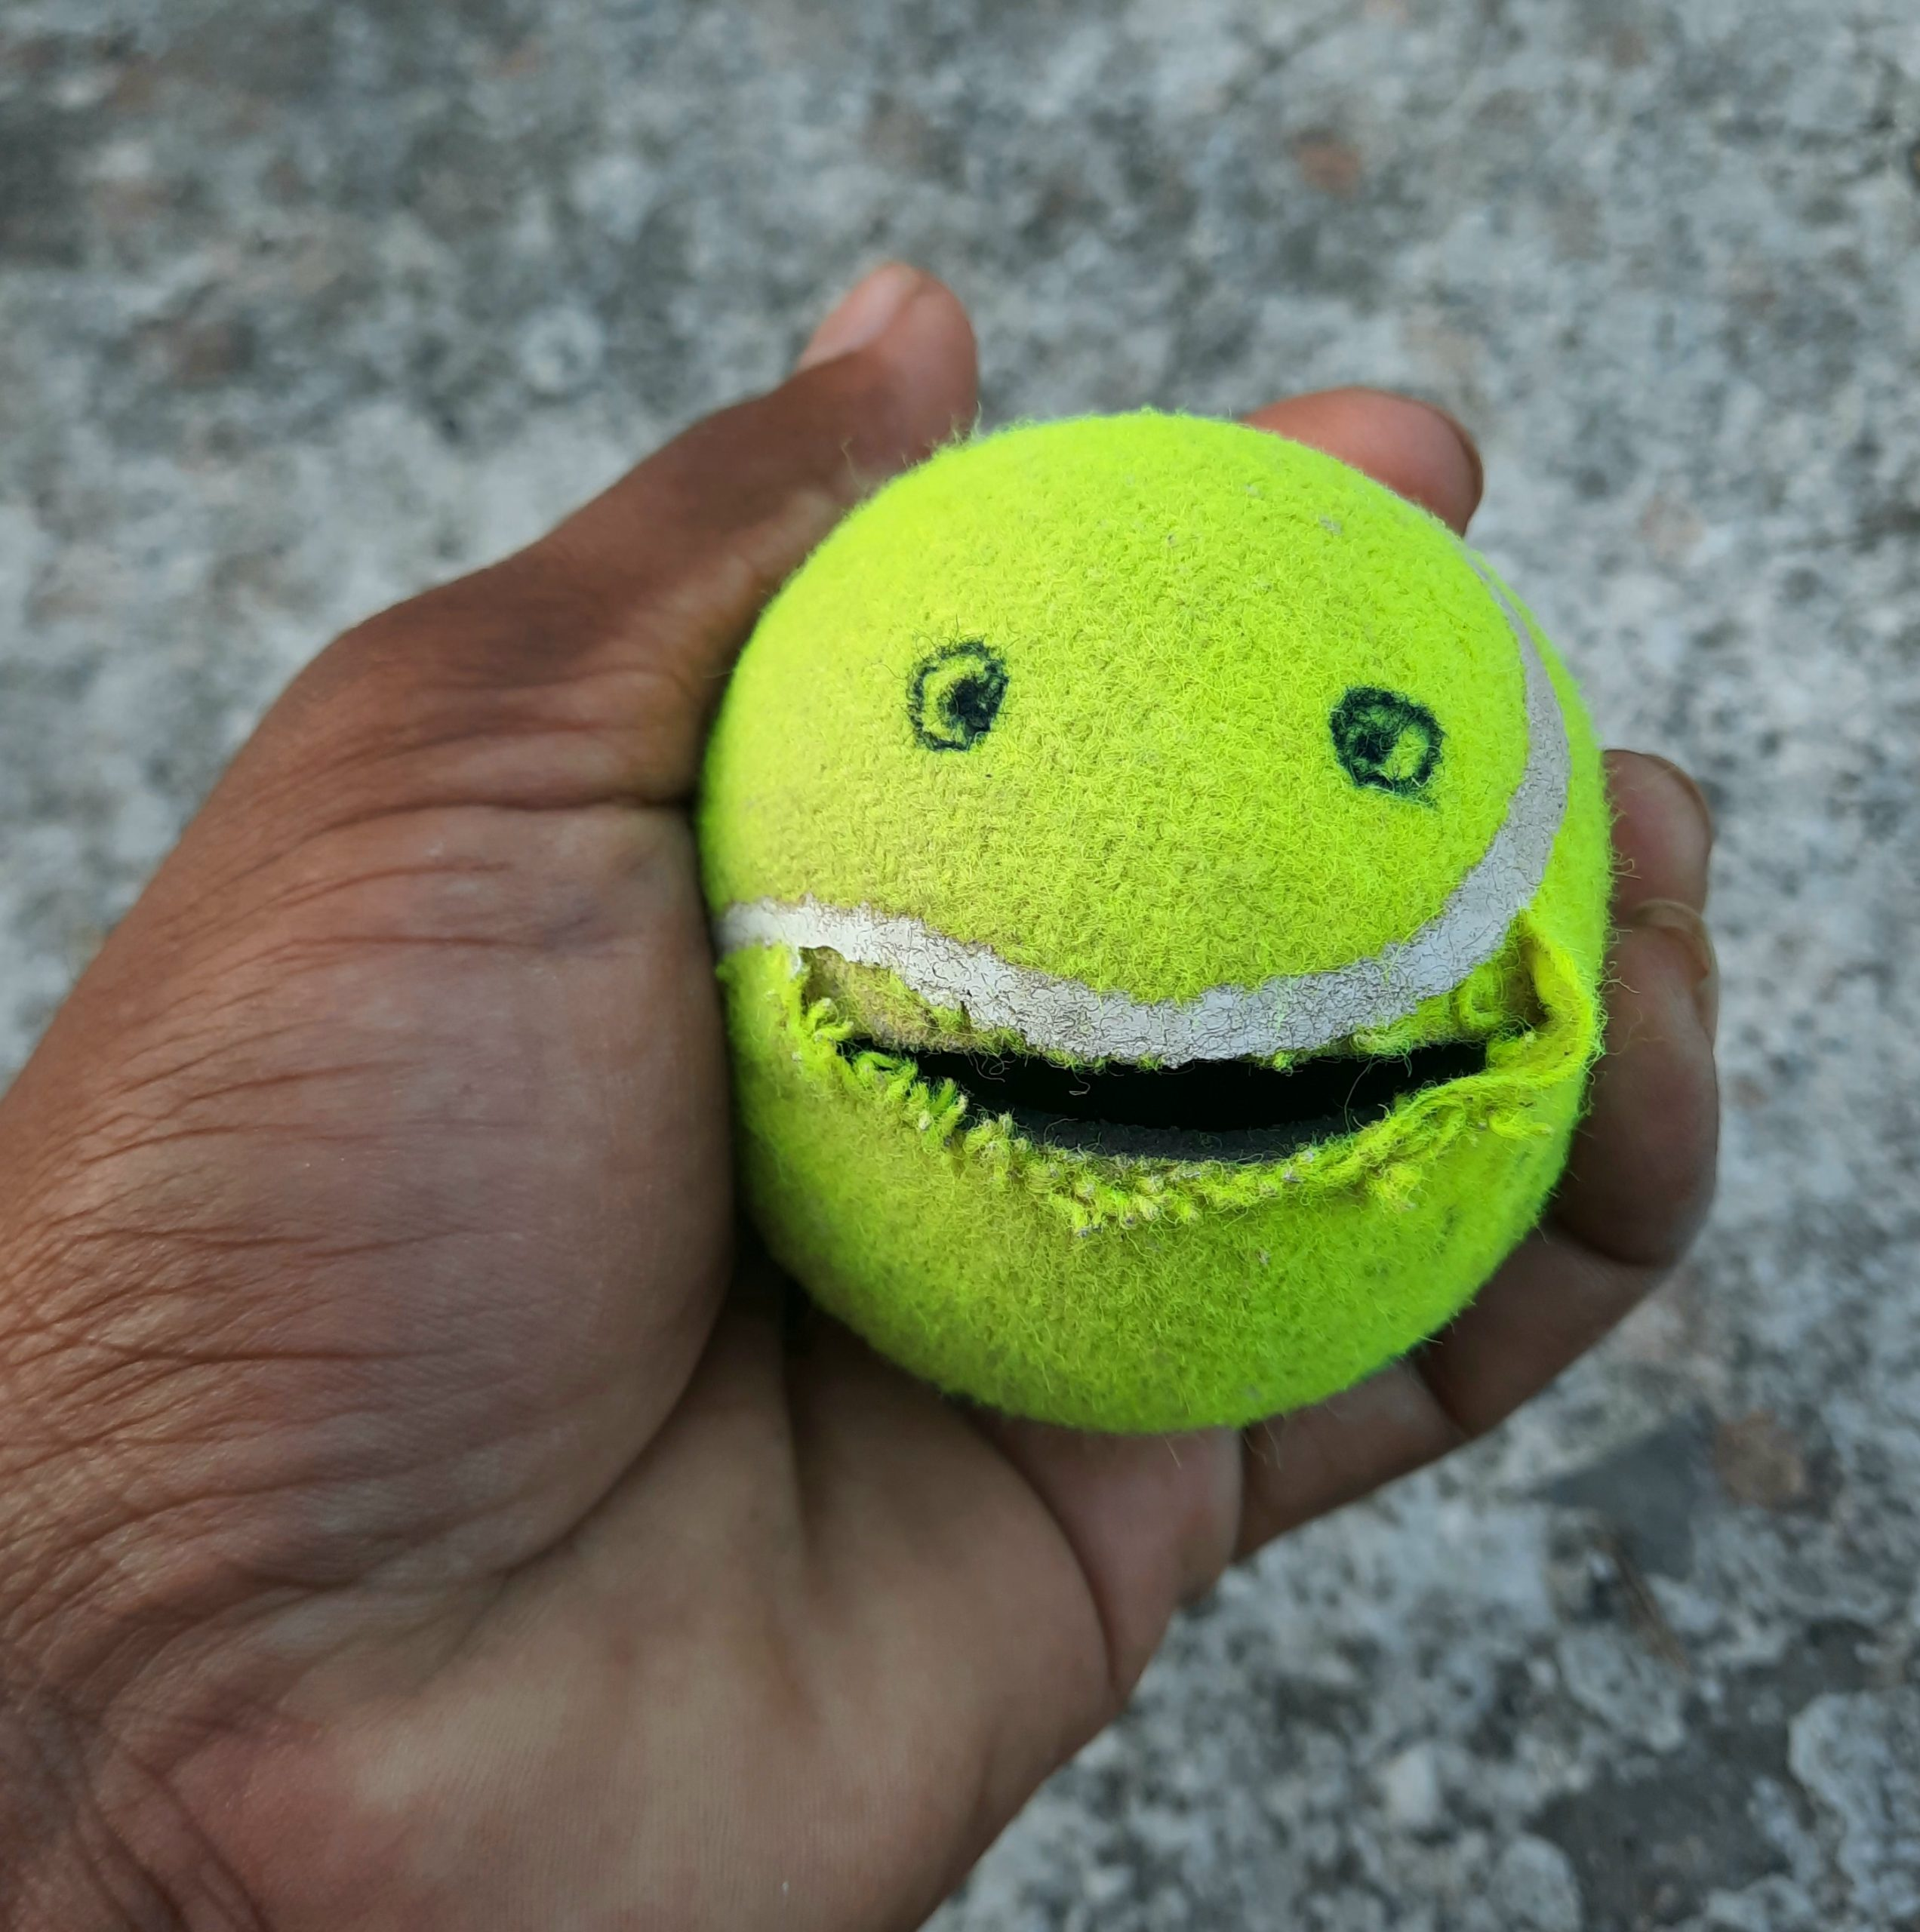 Making emoji with tennis ball